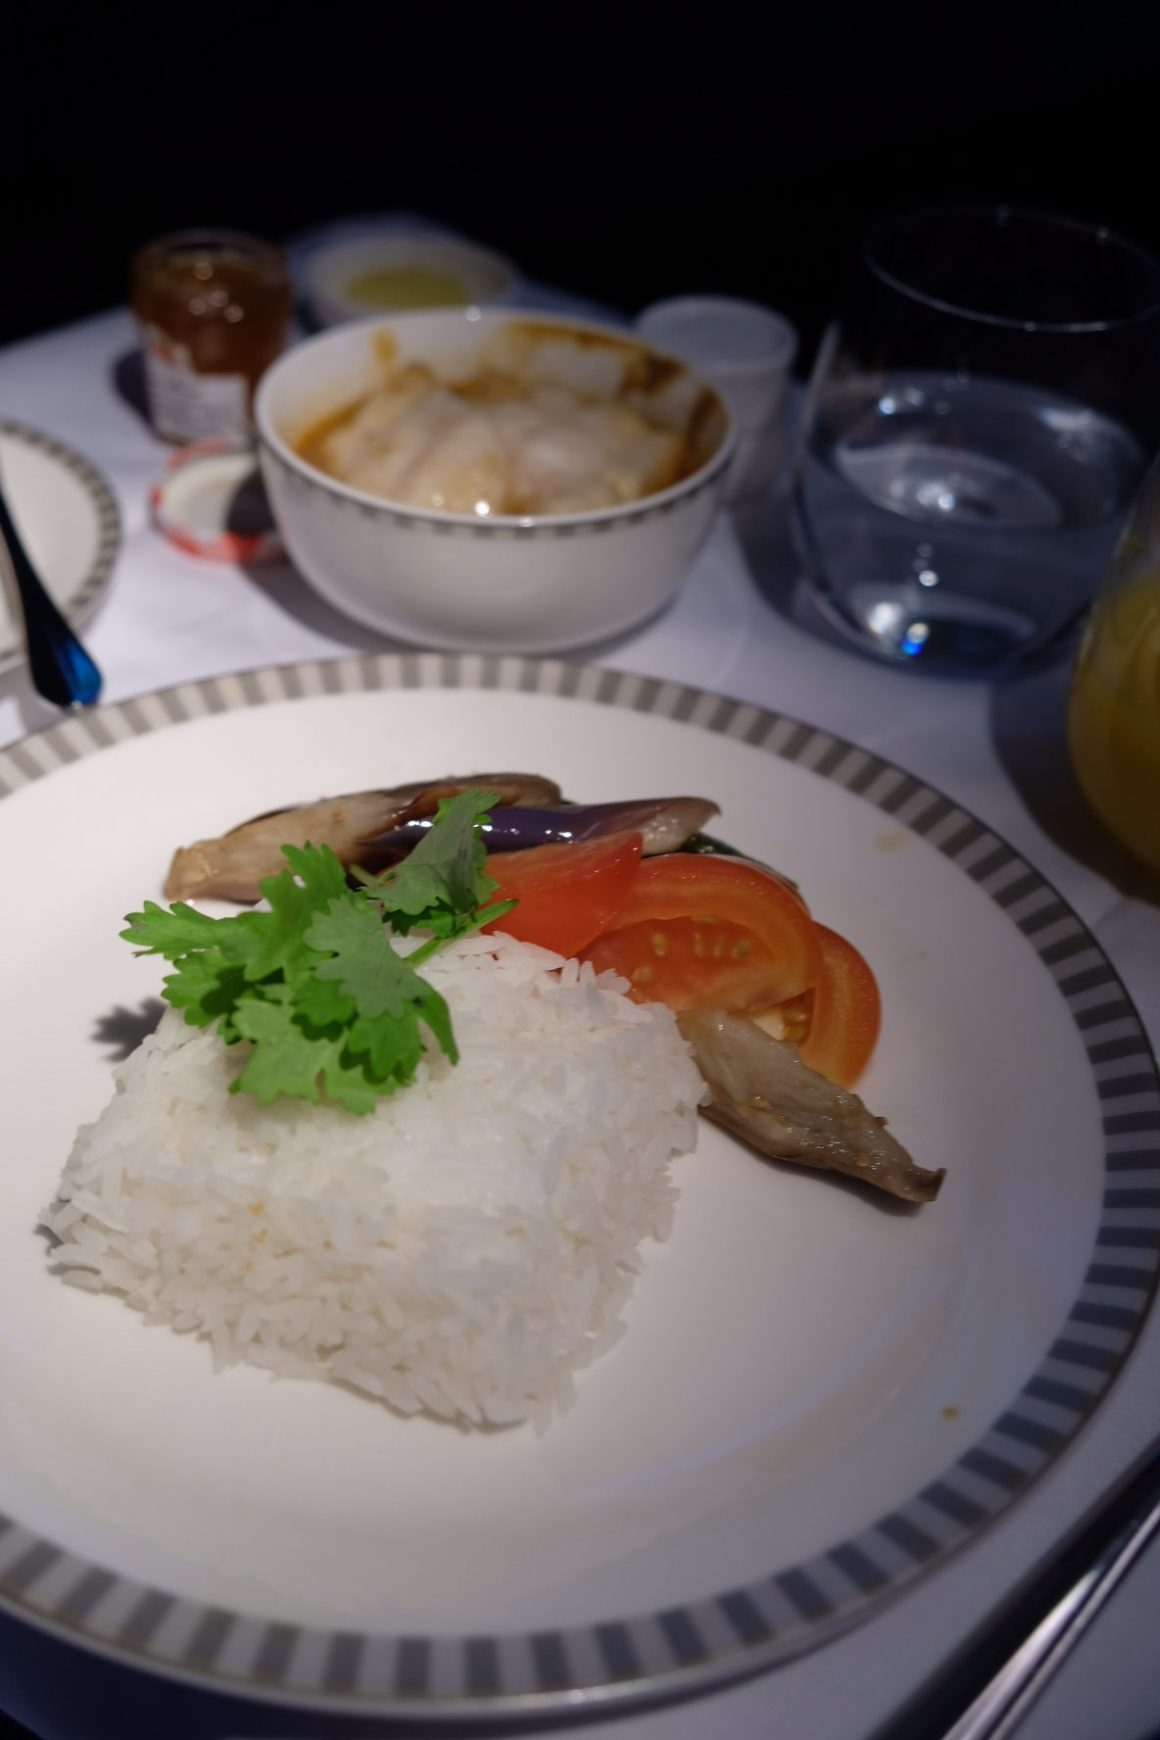 Singapore Airlines Business Class SQ334 From Singapore To Paris – Rice for the Nonya Assam Fish